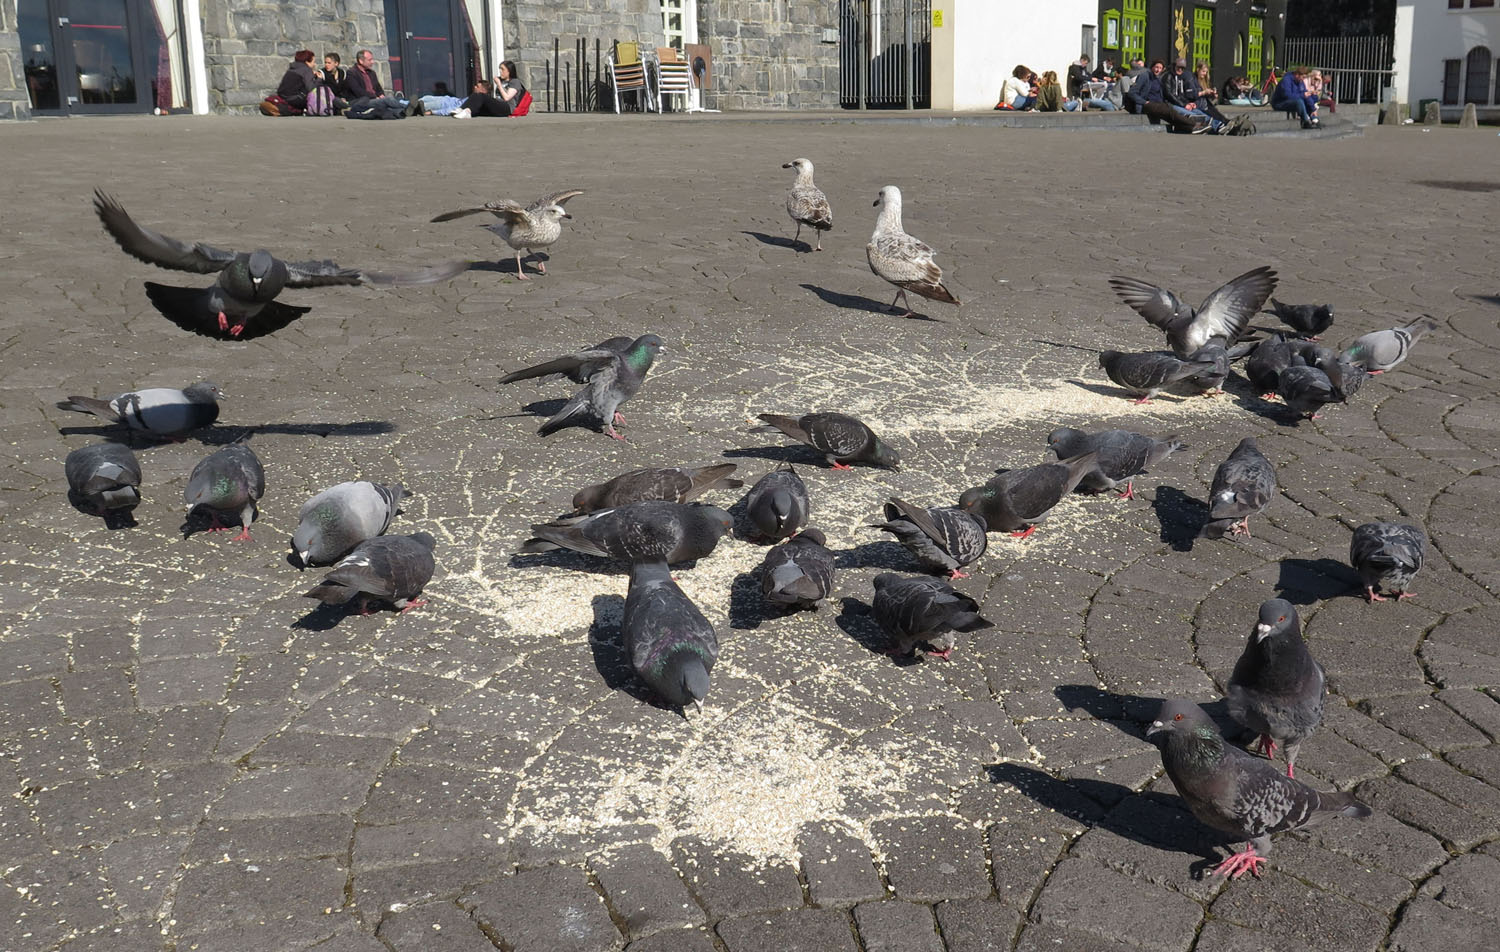 Ireland-Sights-And-Scenery-Galway-Pigeons